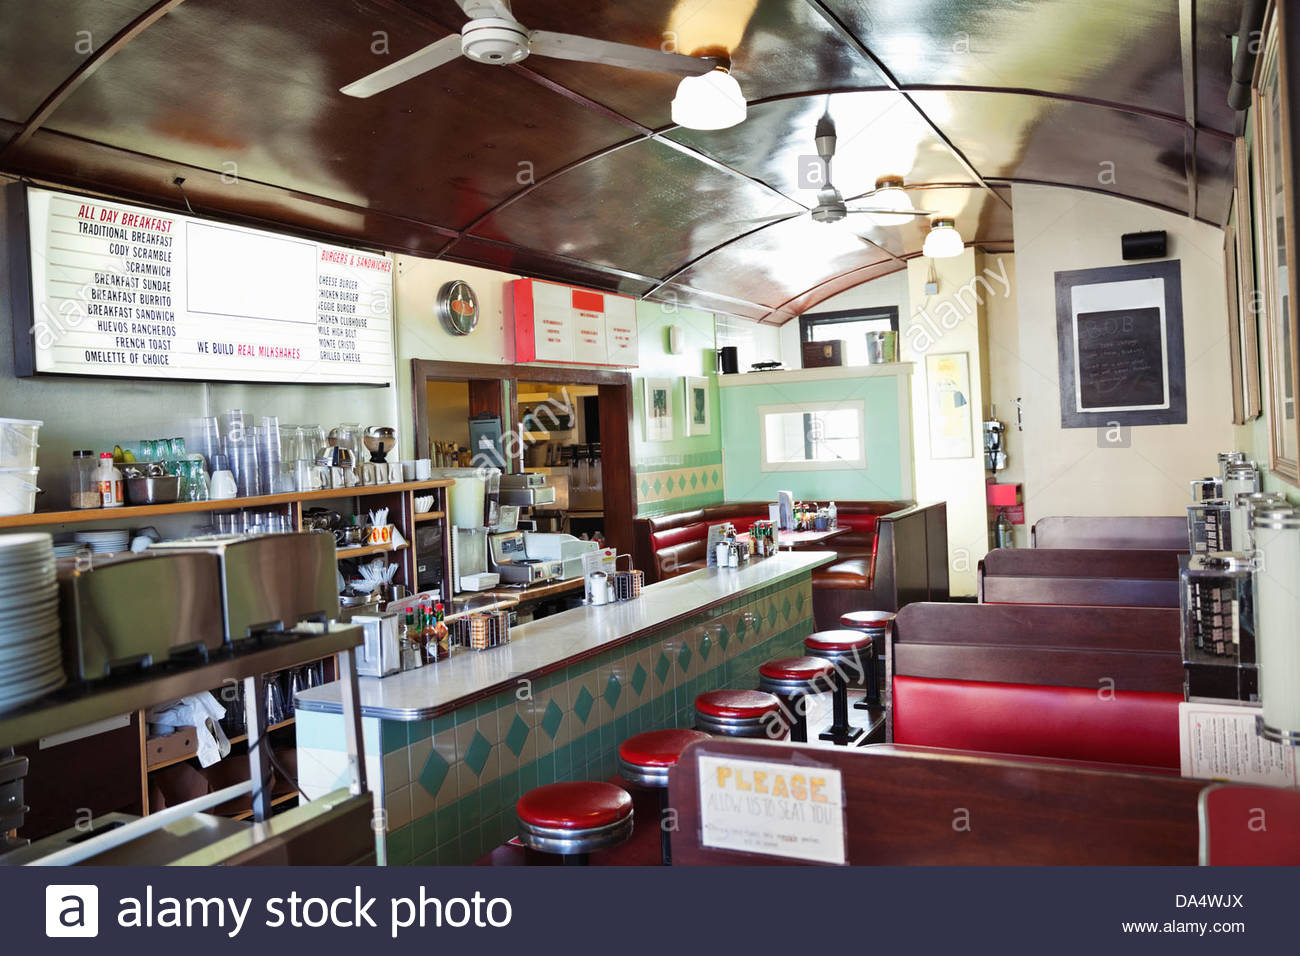 Interior of empty diner - Stock Image